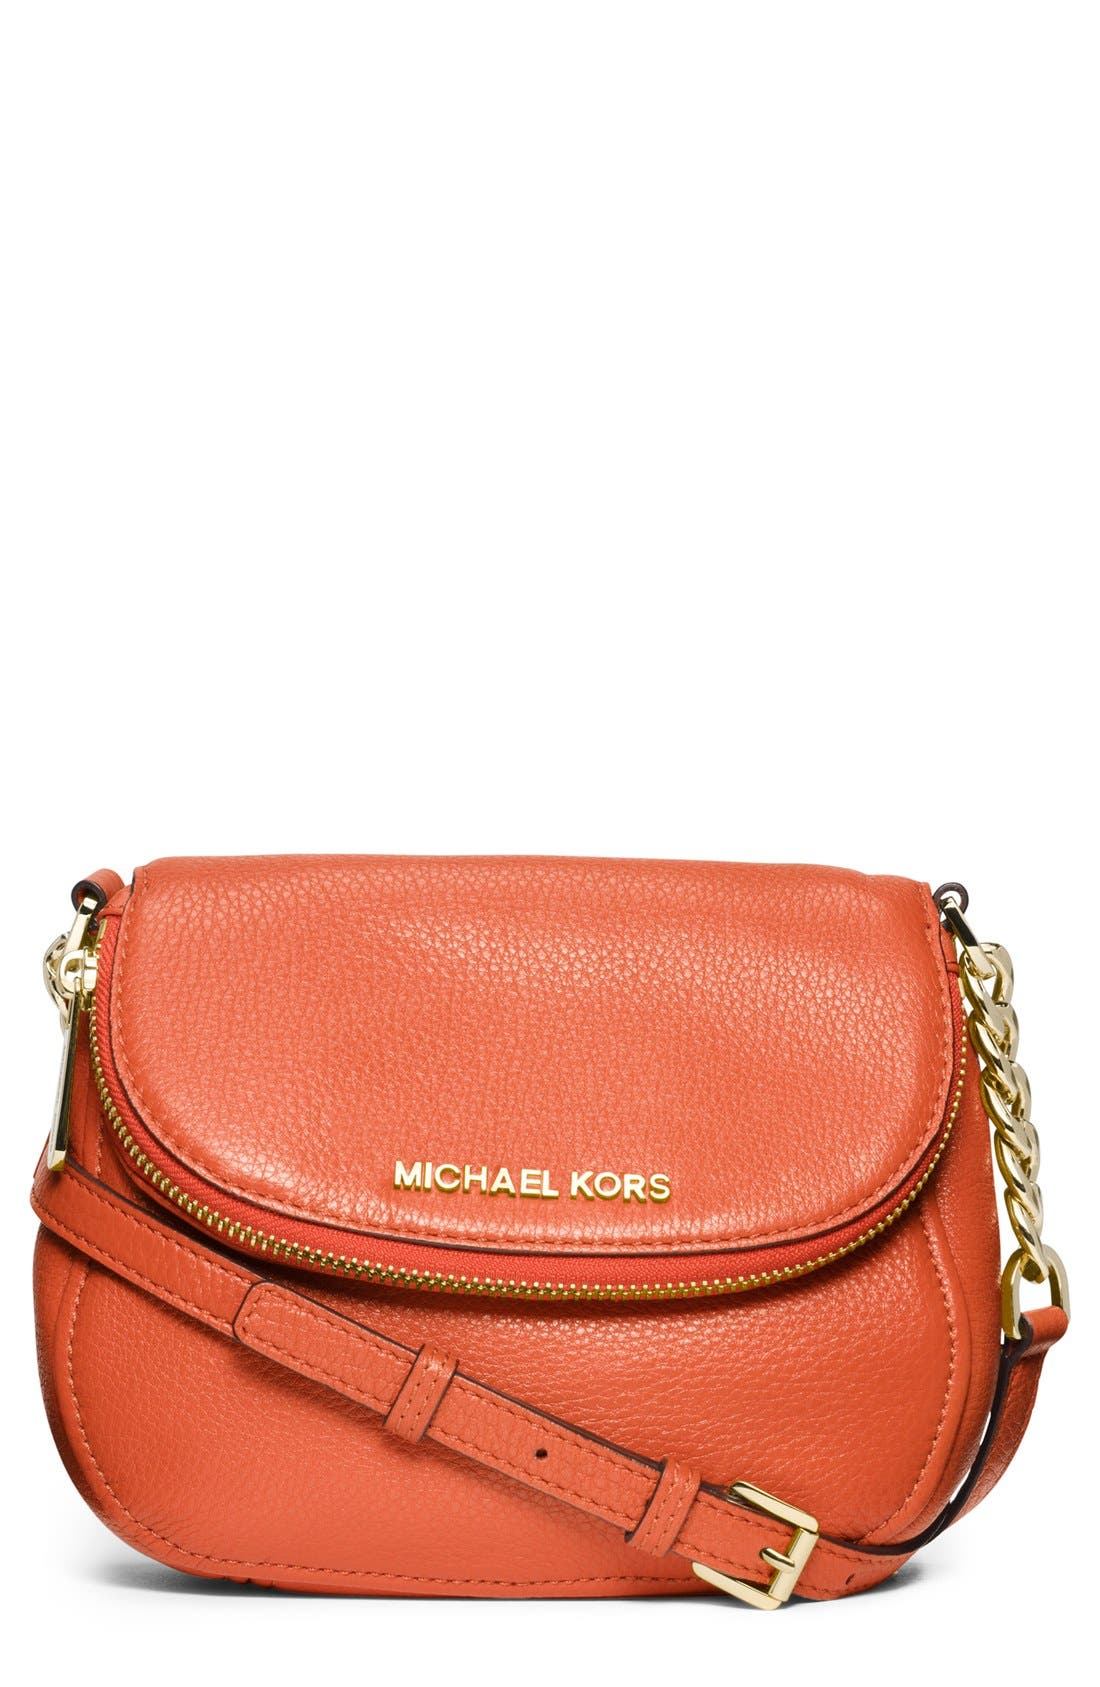 Main Image - MICHAEL Michael Kors 'Bedford' Leather Crossbody